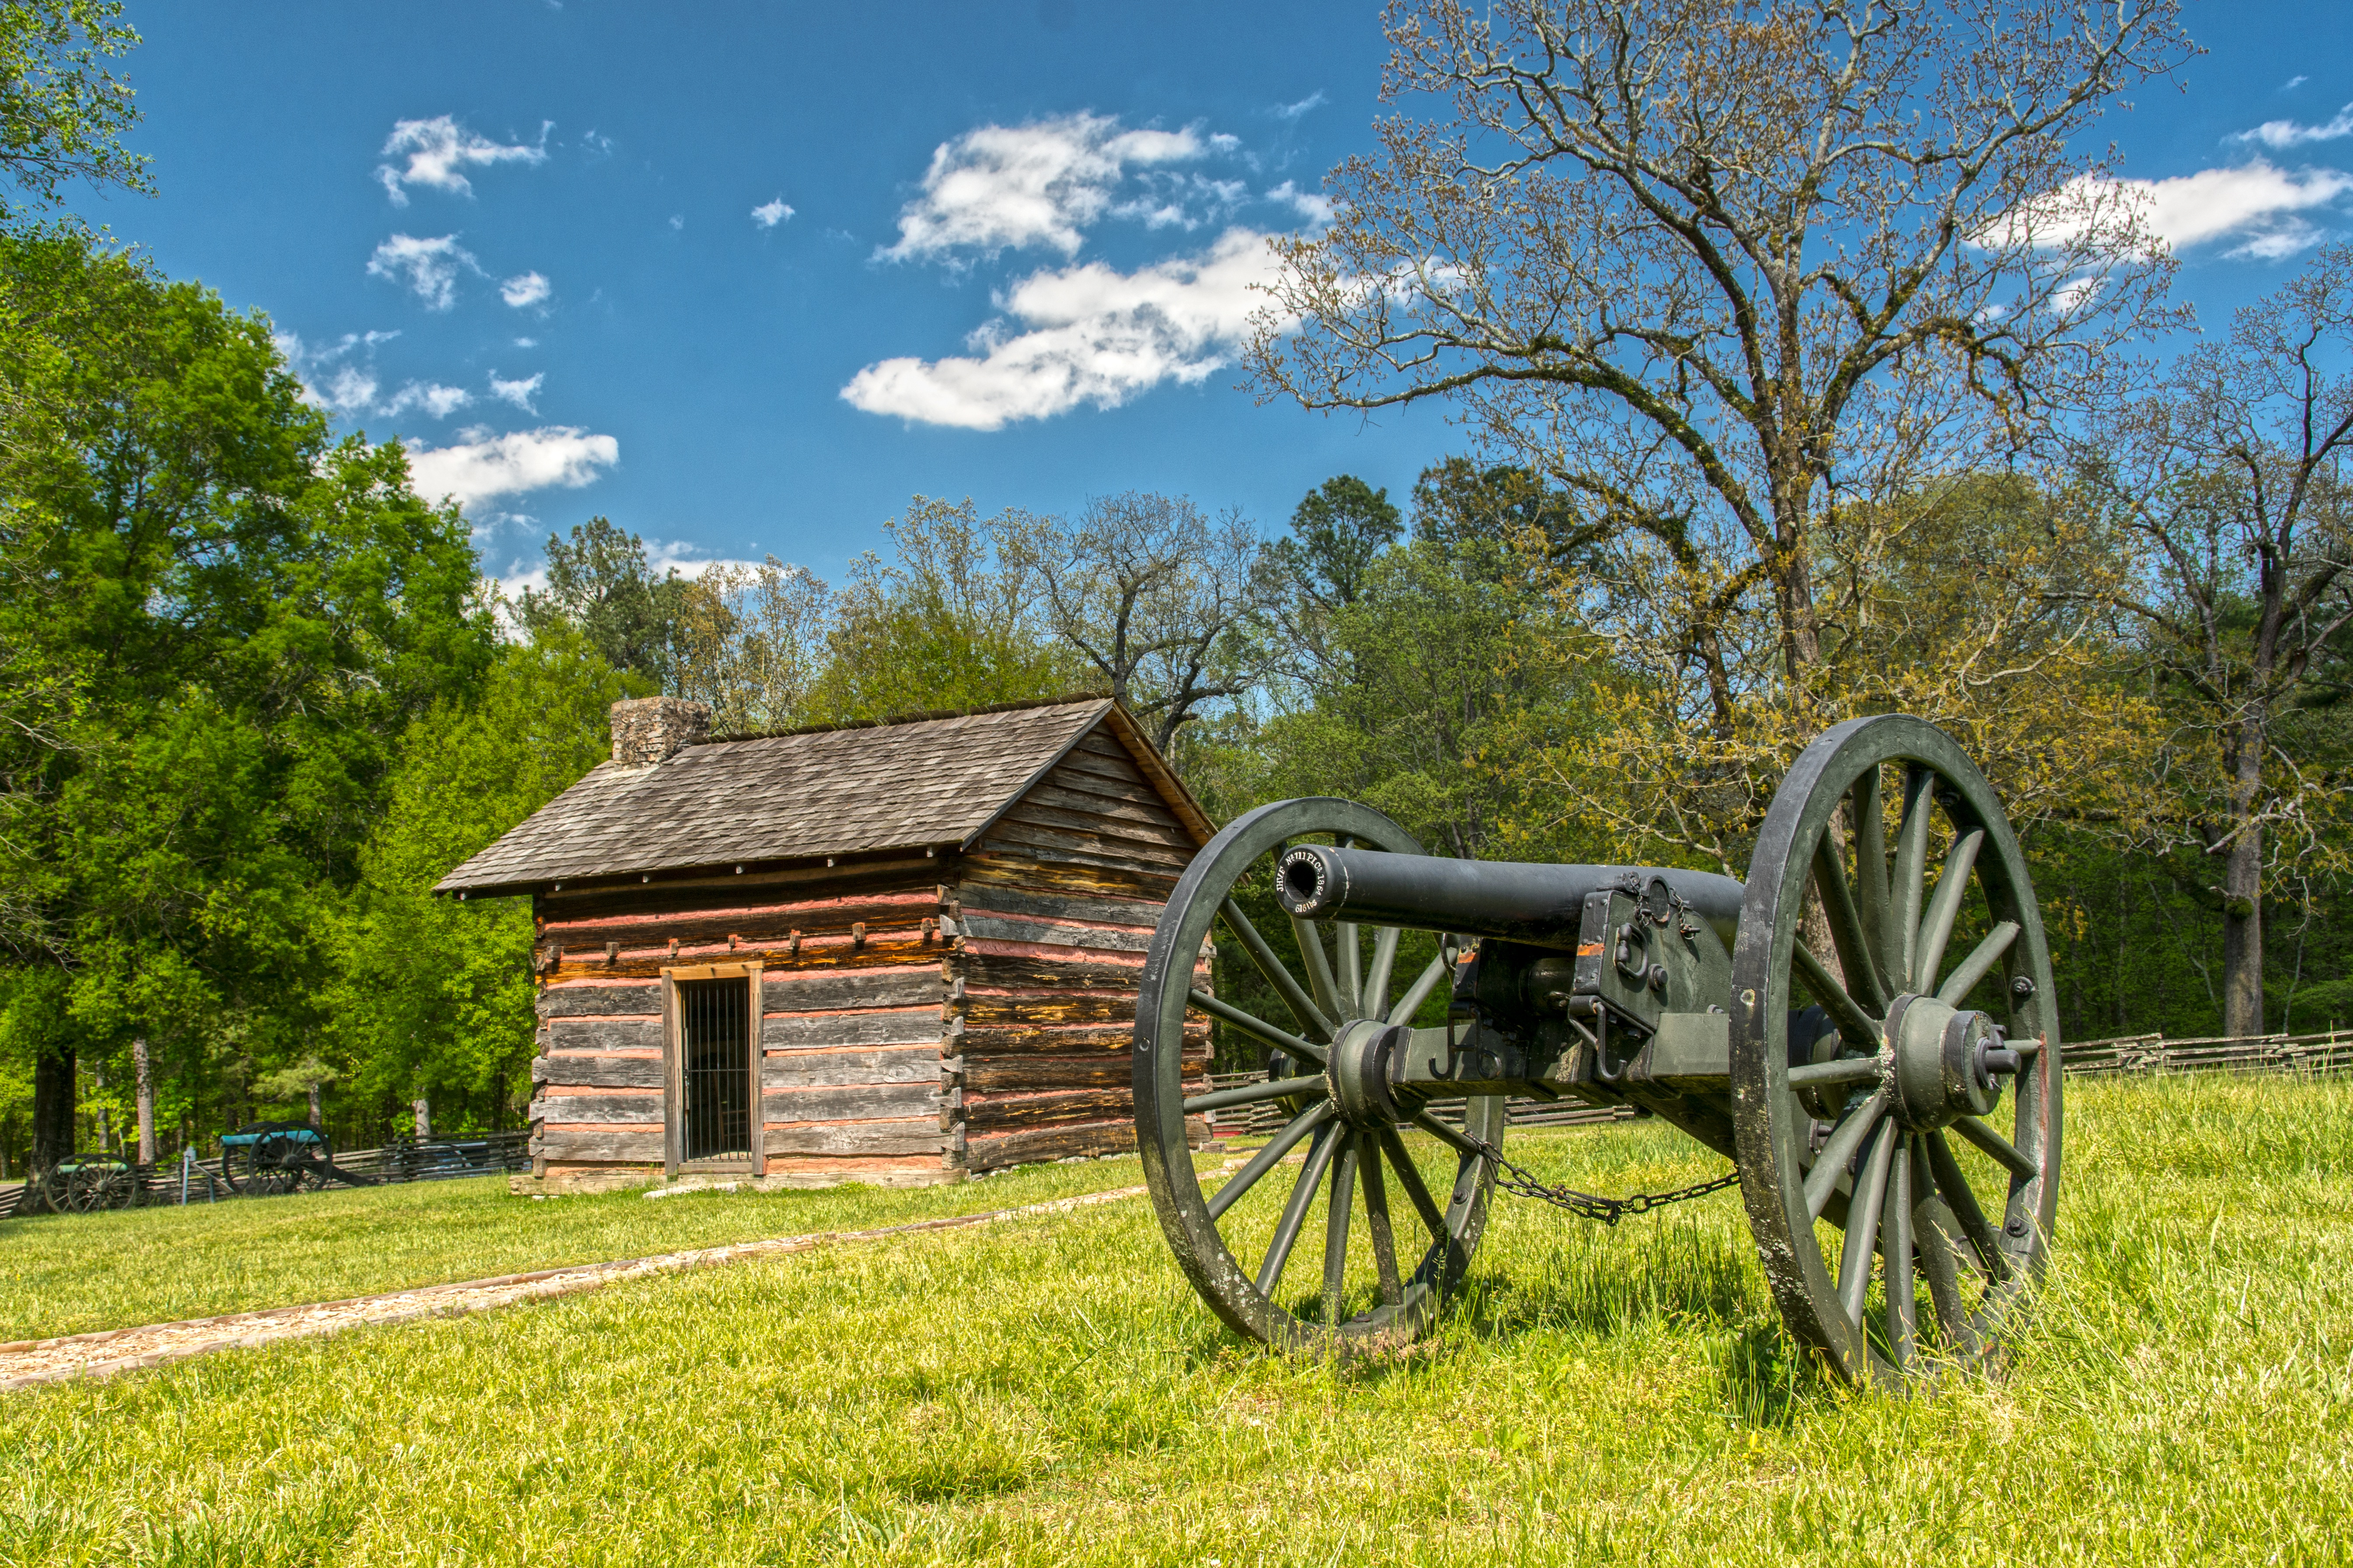 In a green grassy field, an old Civil War cannon sits outside of a small, wooden cabin.